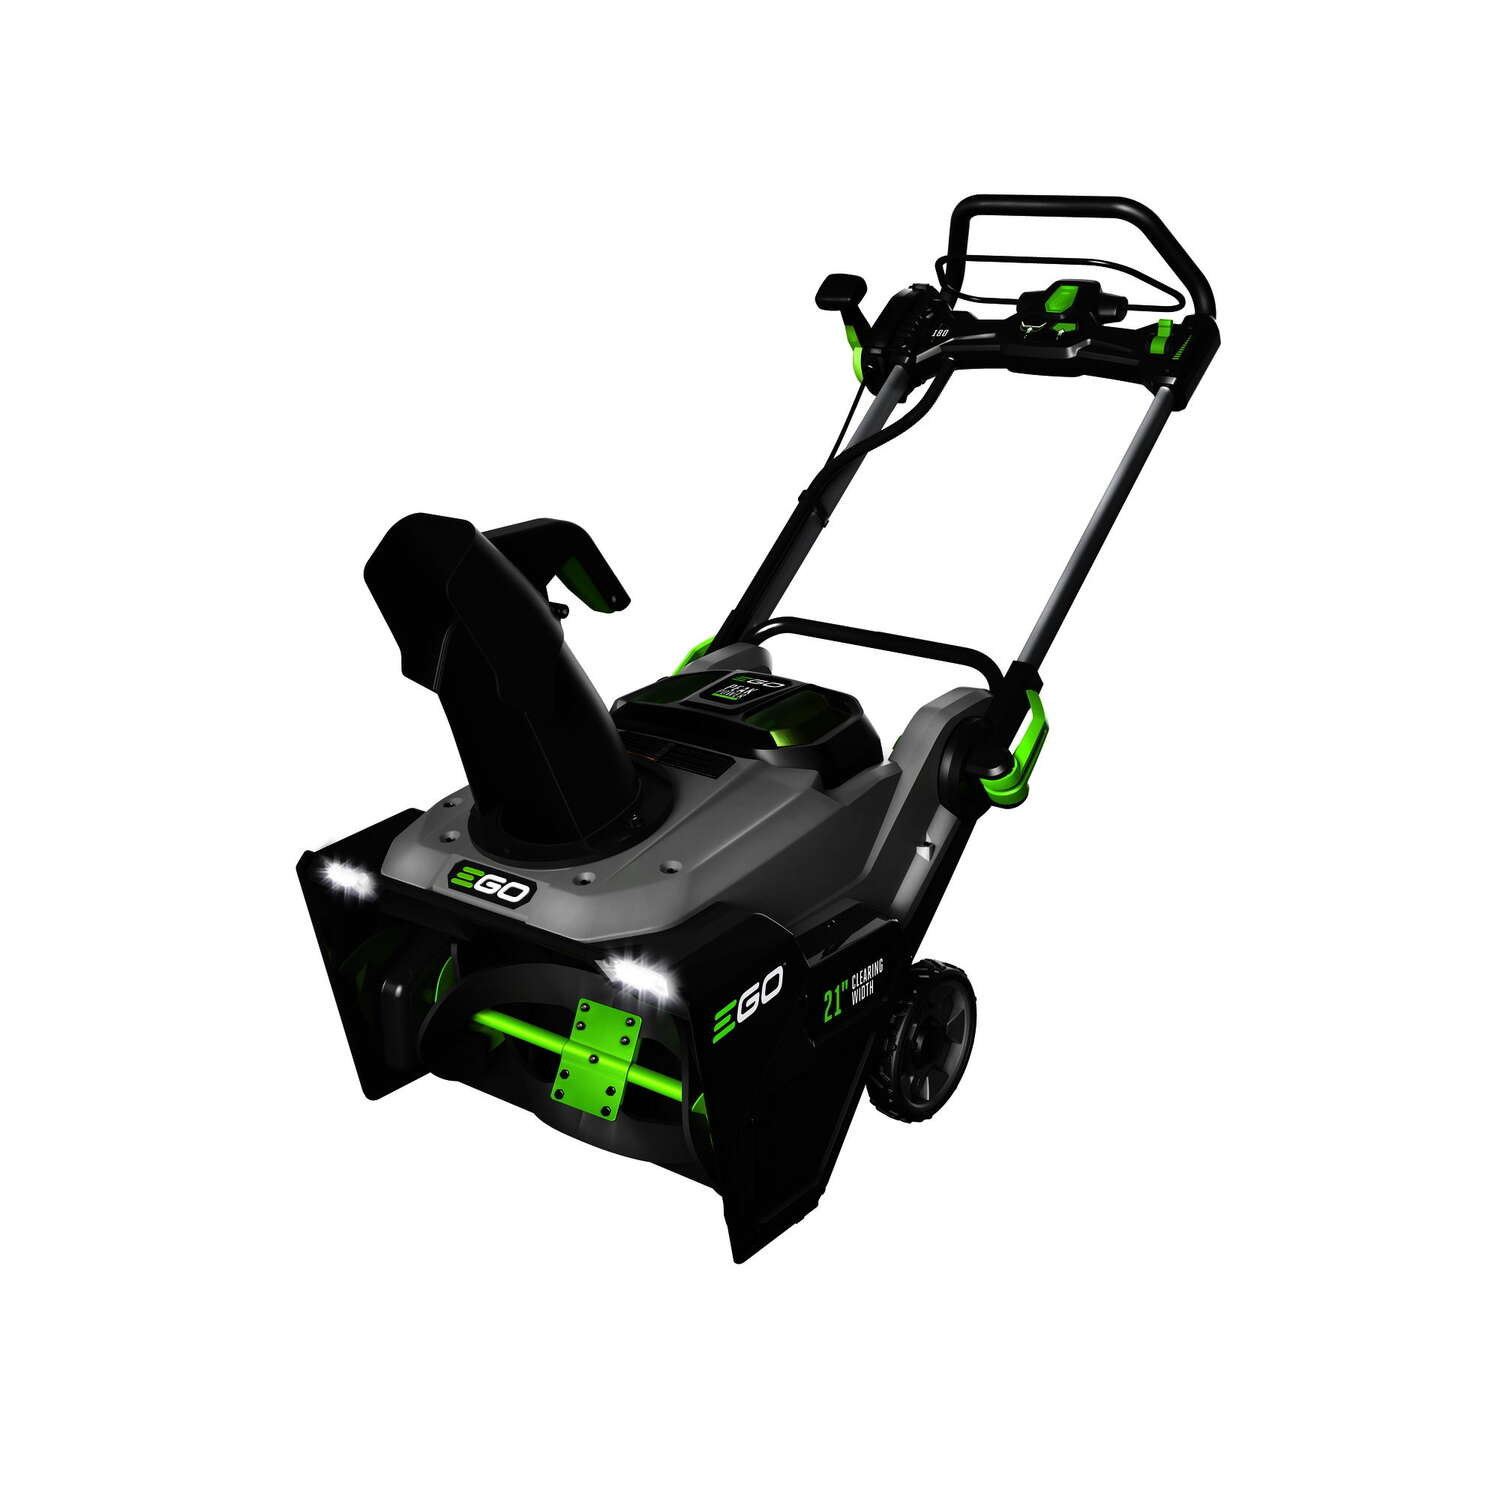 EGO  Power Plus  21 in. Single Stage Push-Button Start  56 volt Battery  Snow Blower